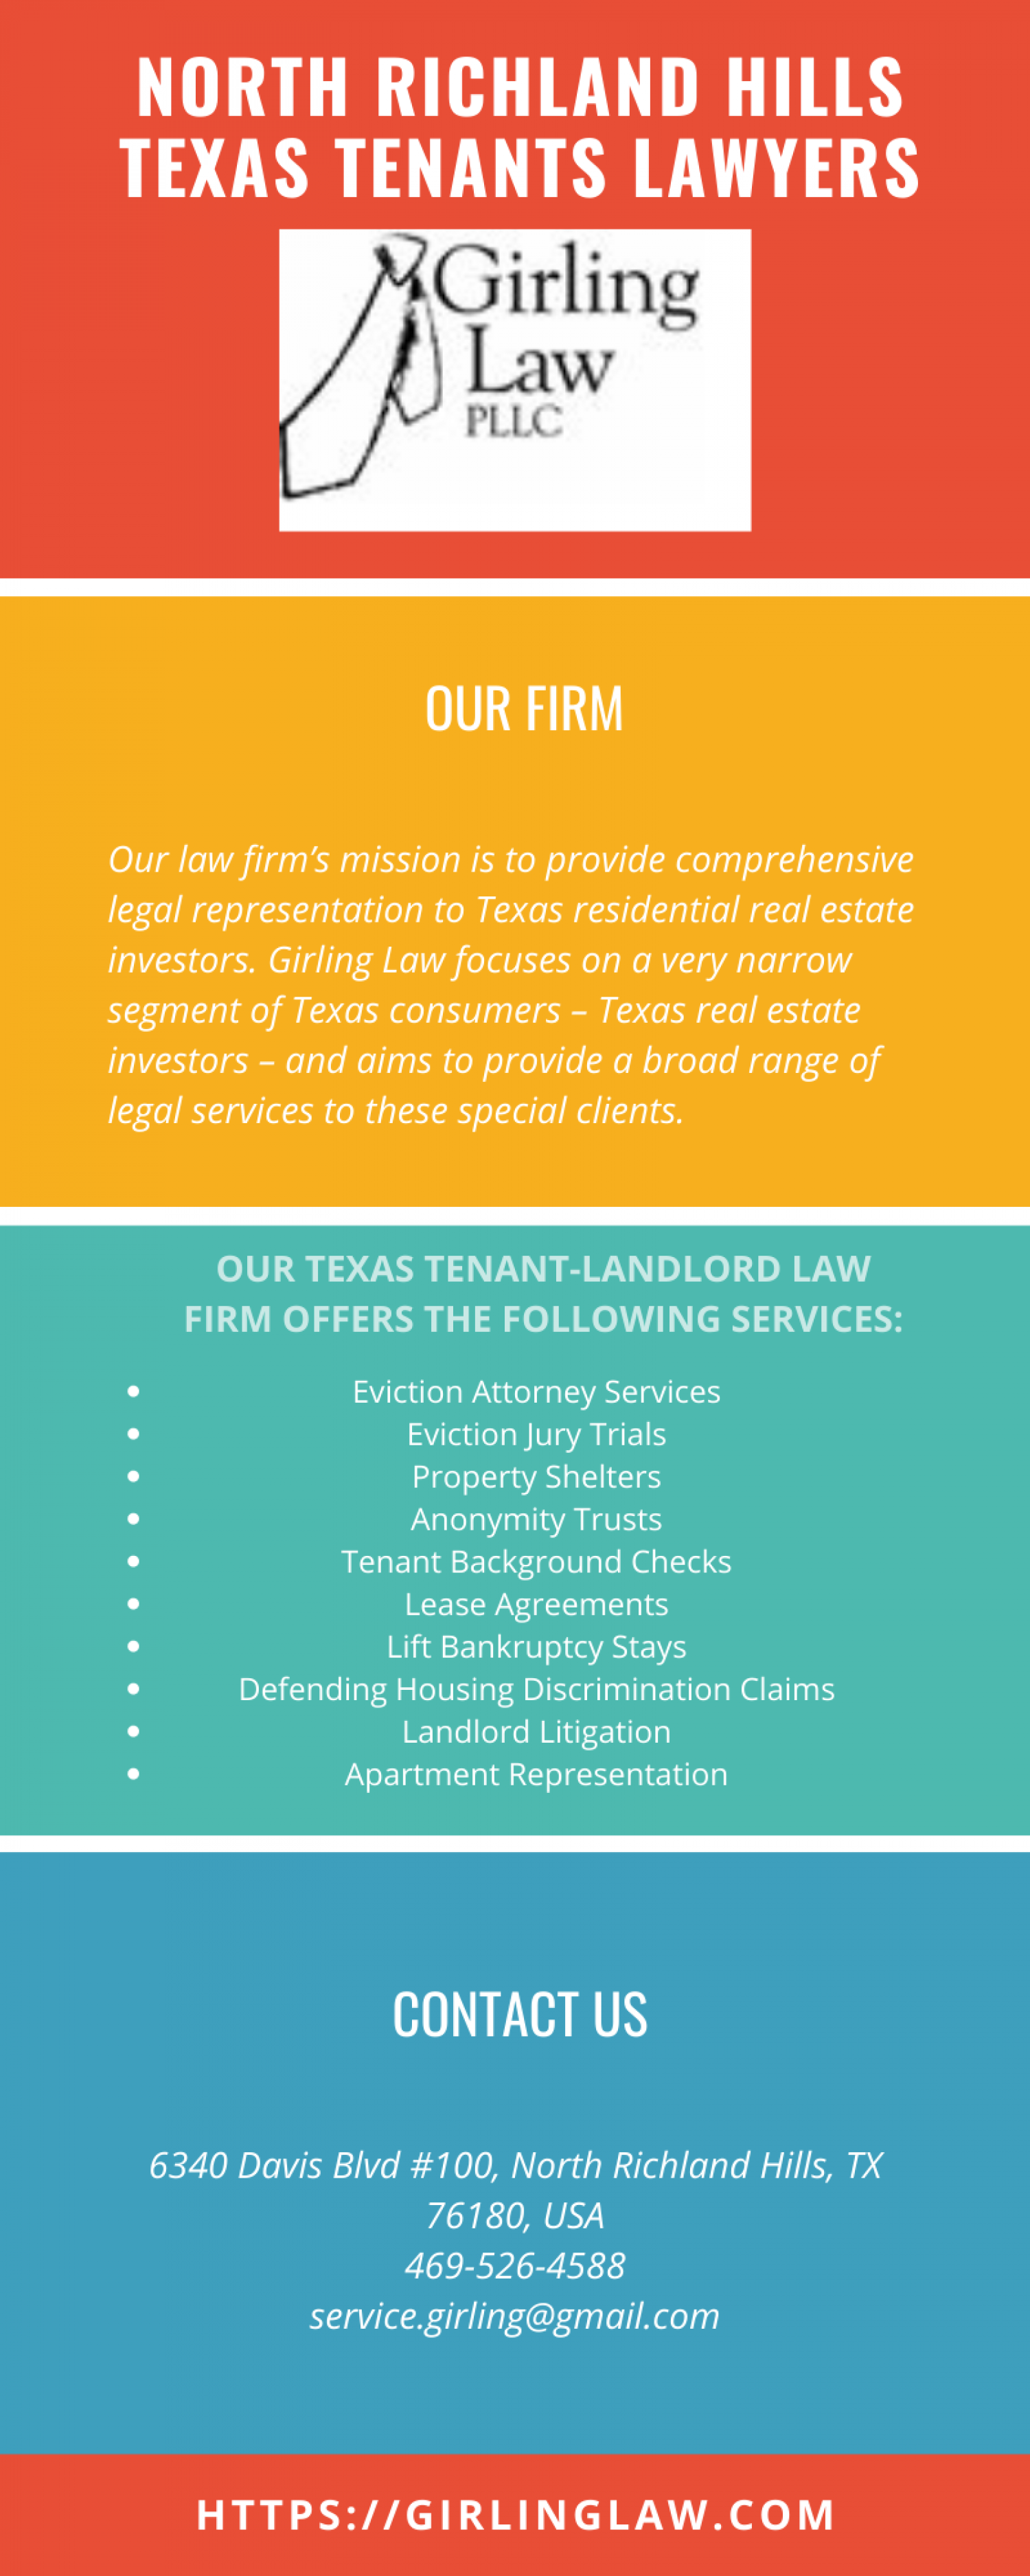 North Richland Hills Texas Tenants Lawyers Infographic